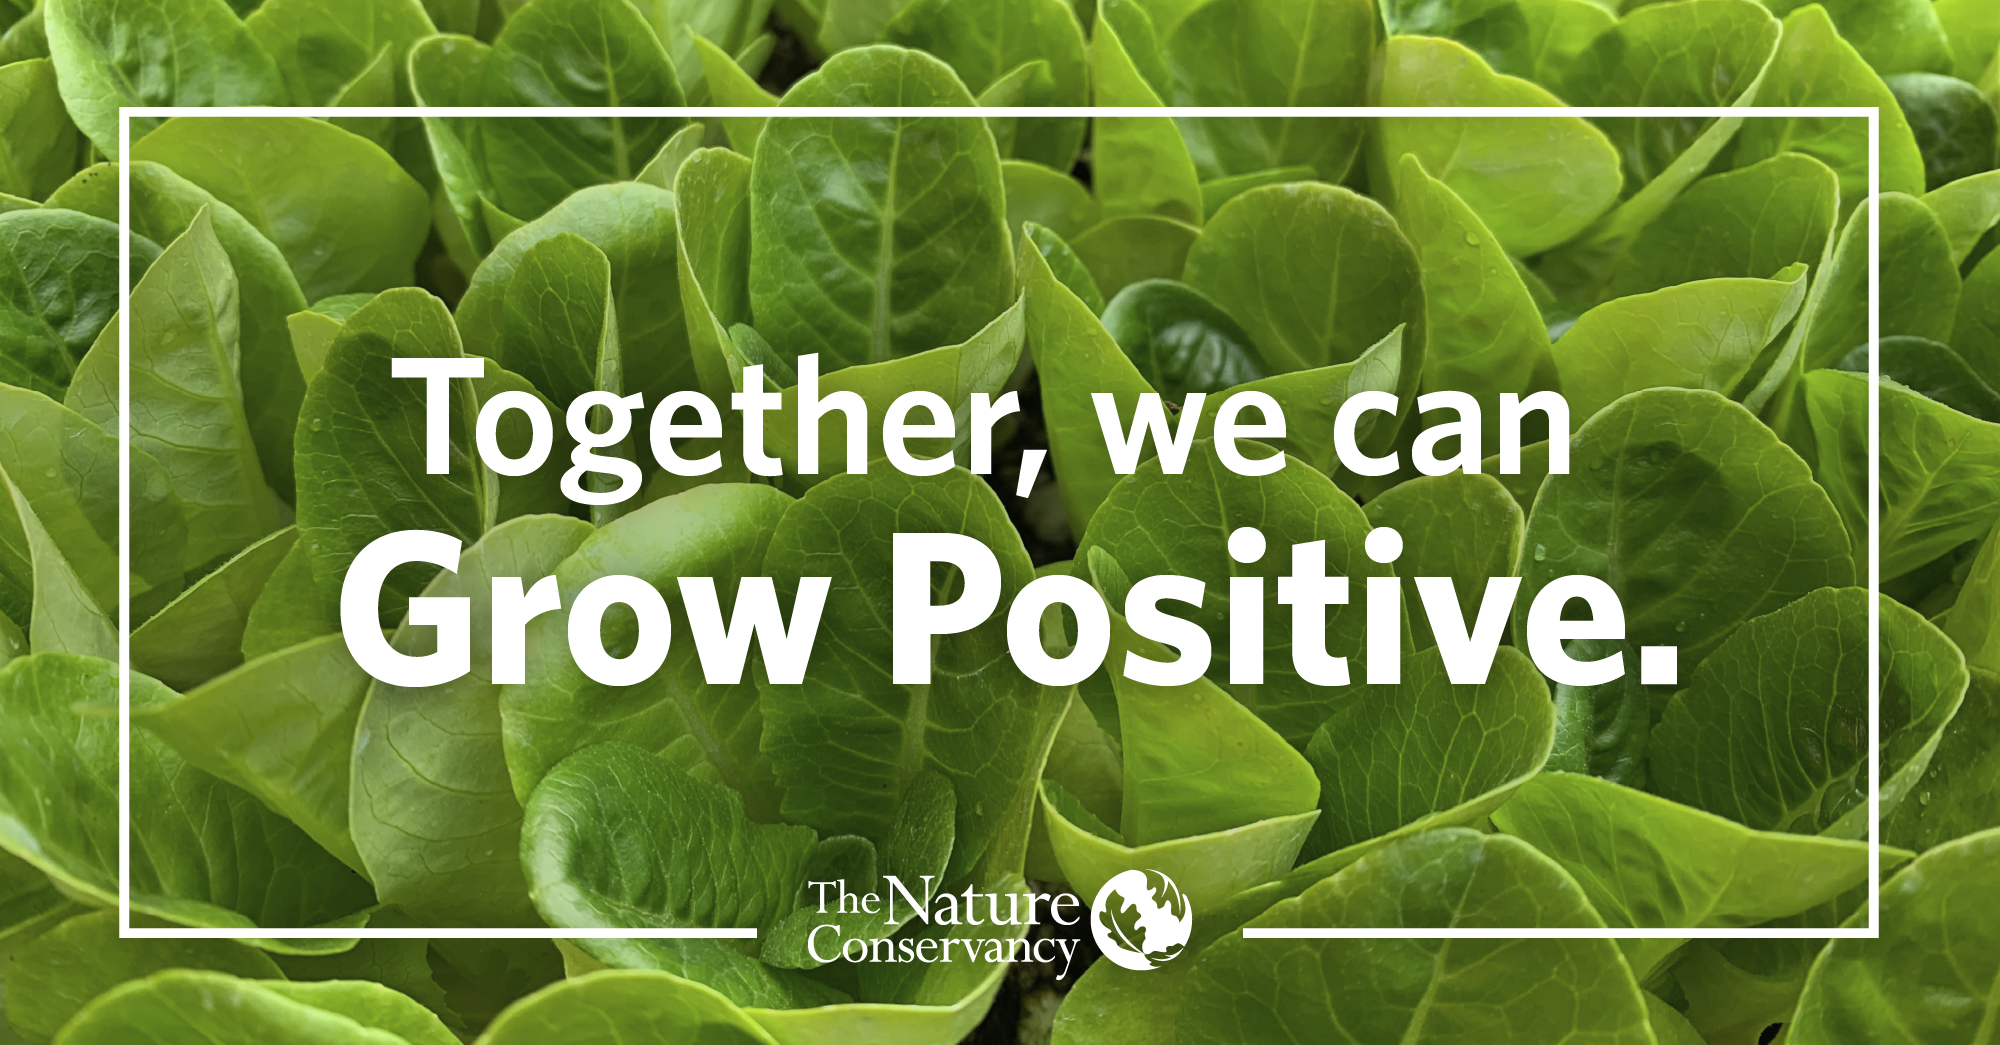 white text that says 'together, we can grow positive' with tnc logo over a photo of dark red apples